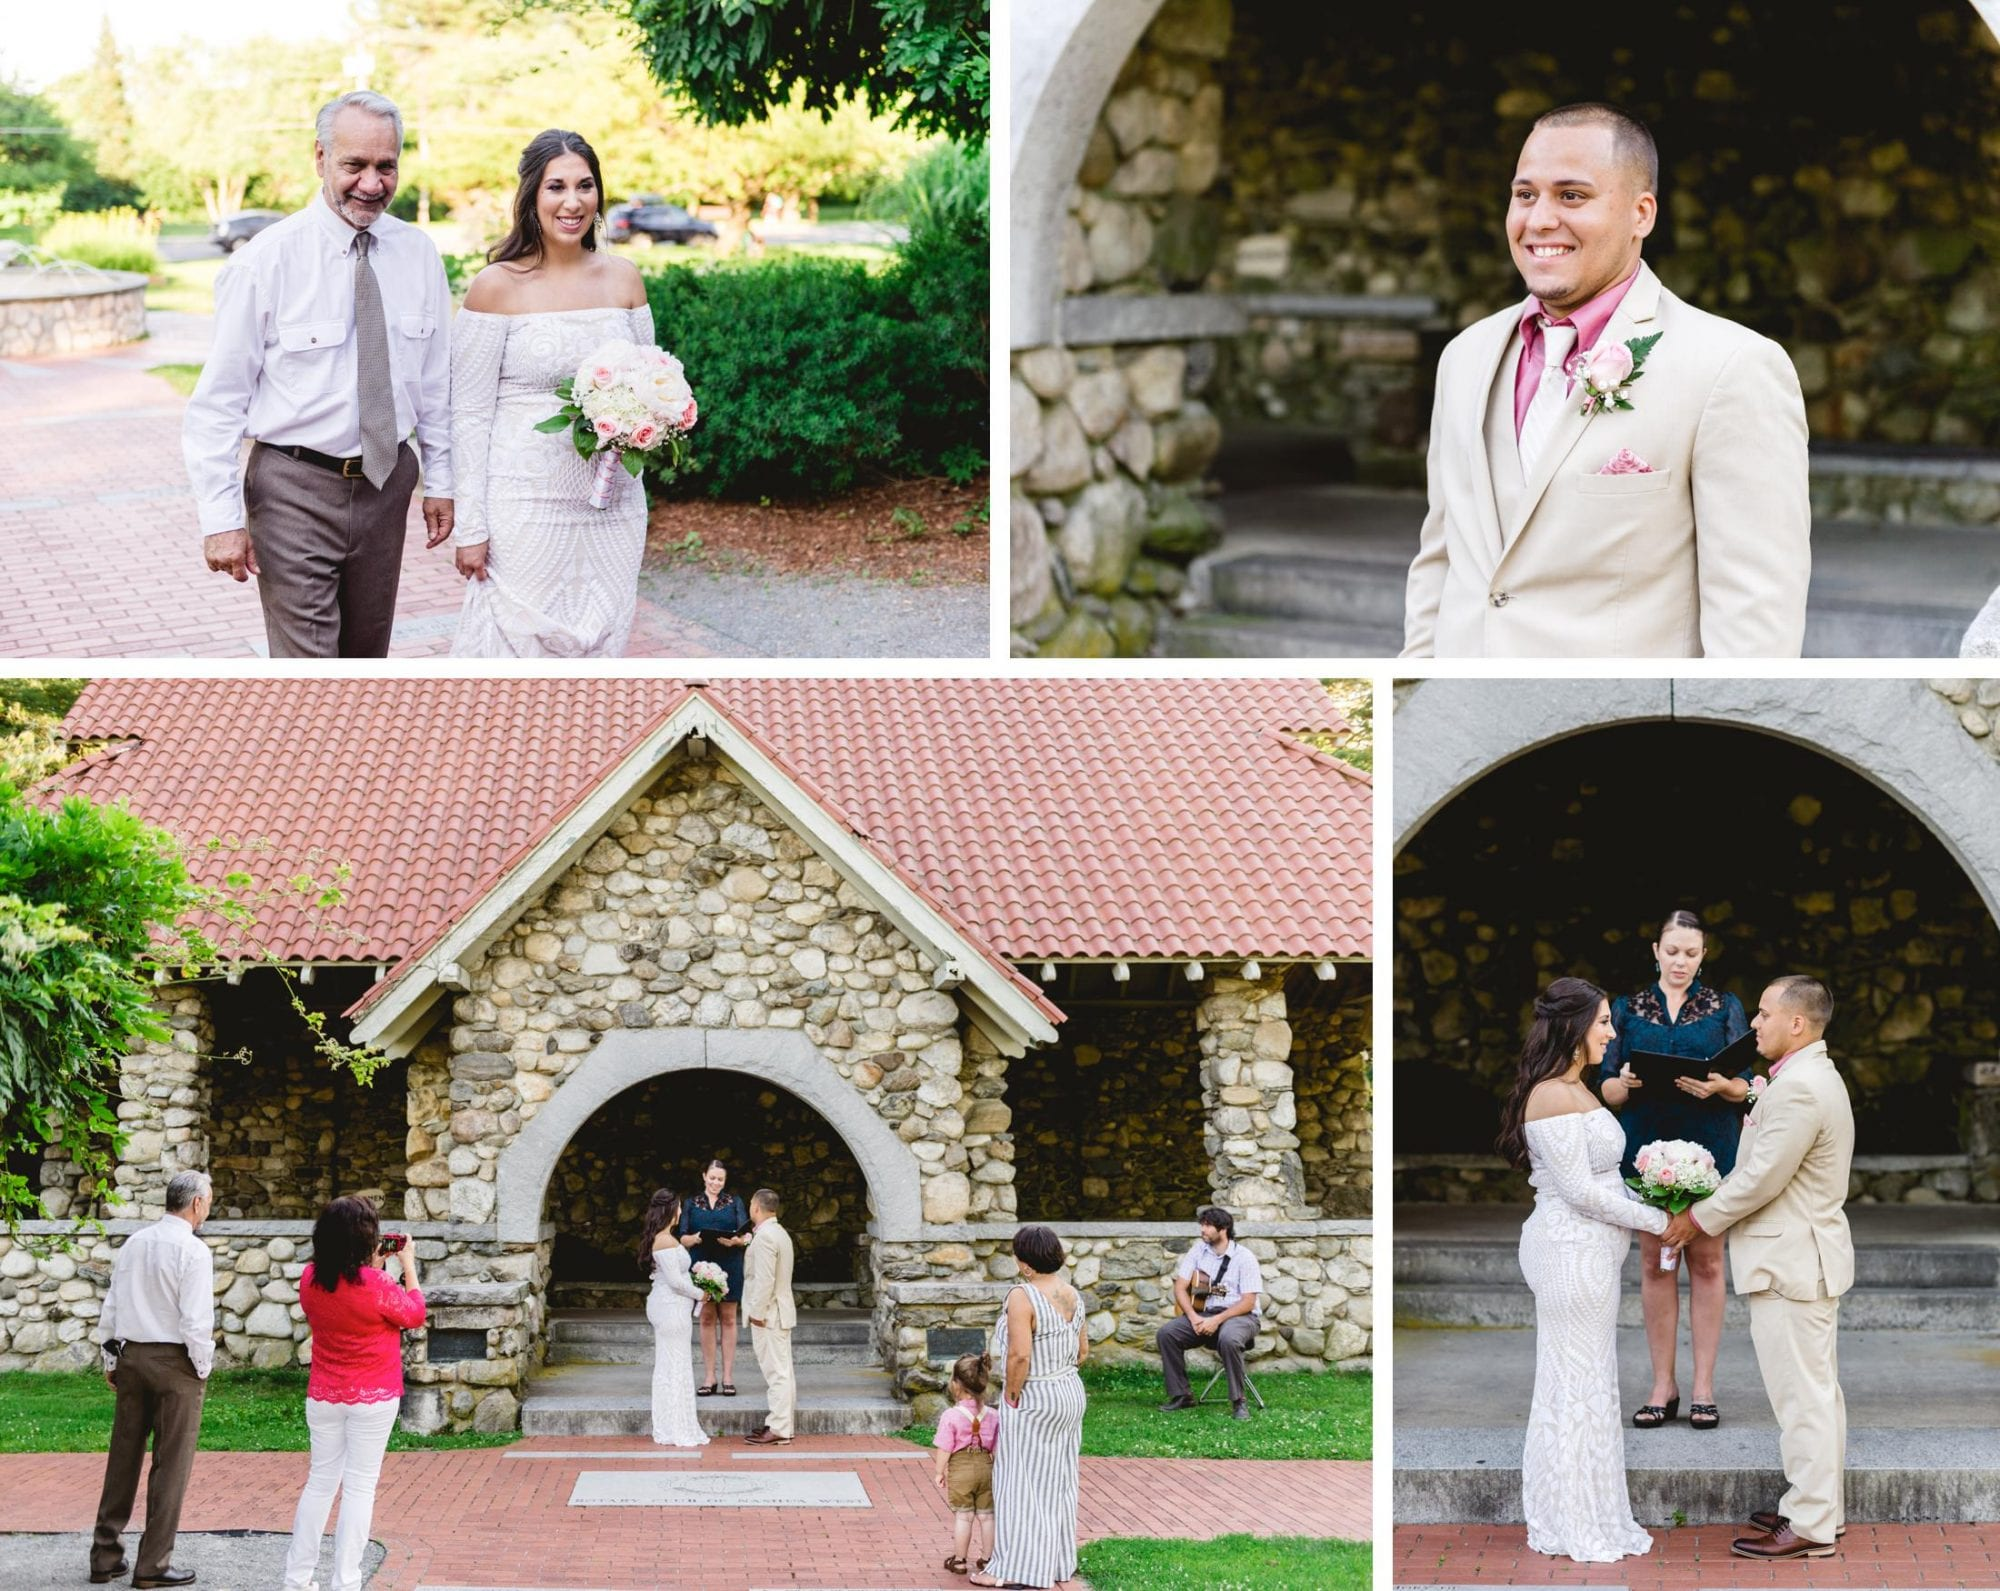 Greeley Park Elopement Nashua NH